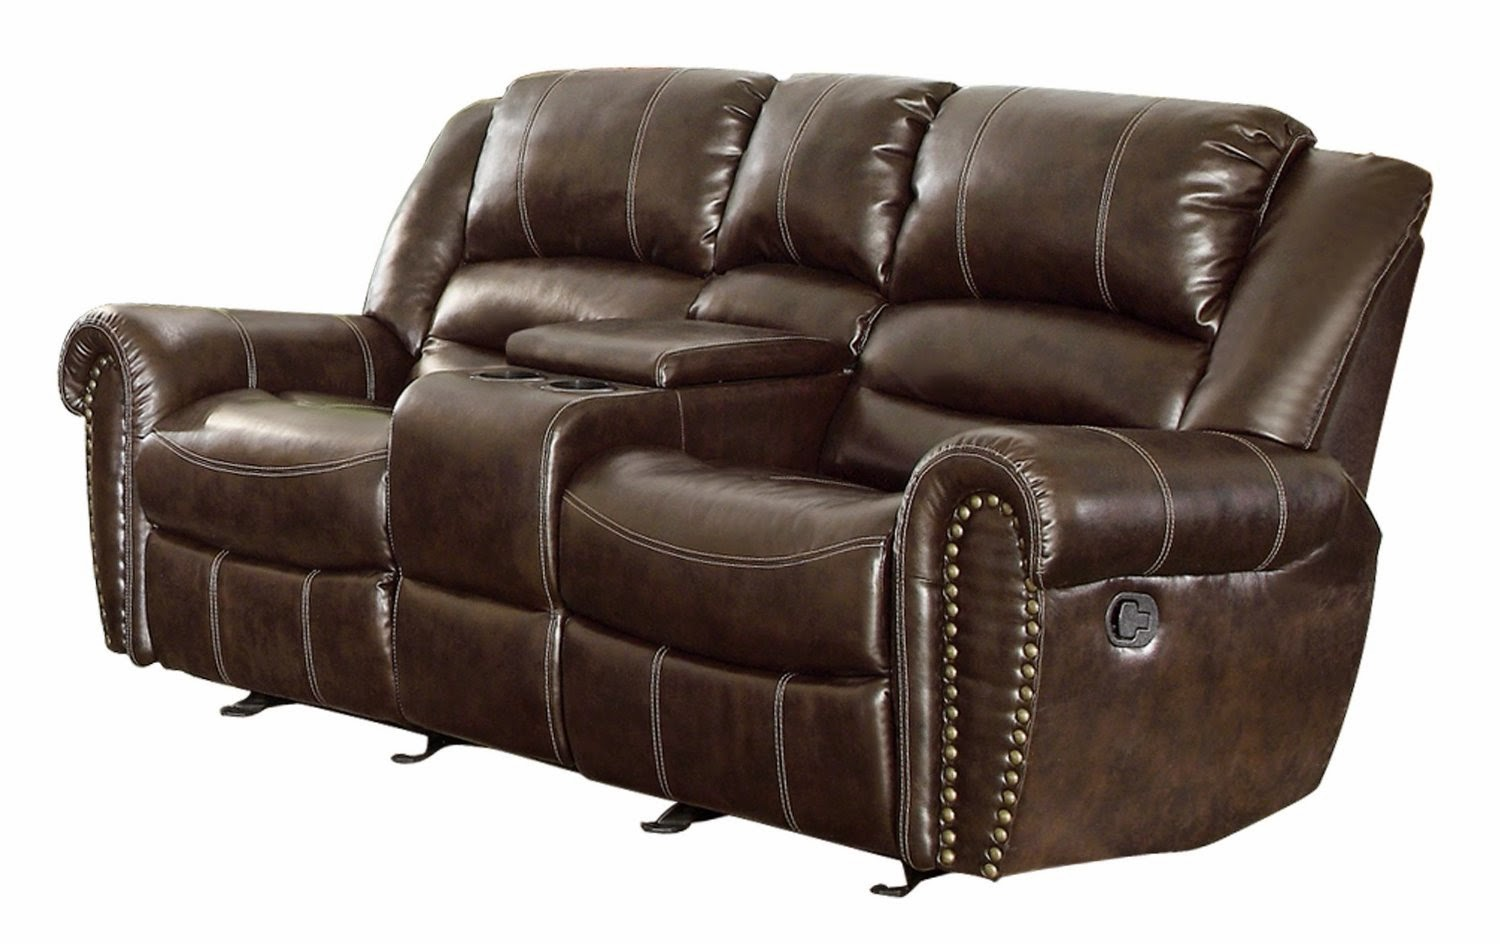 reclining sofa loveseat and chair sets two seat reclining leather sofa. Black Bedroom Furniture Sets. Home Design Ideas